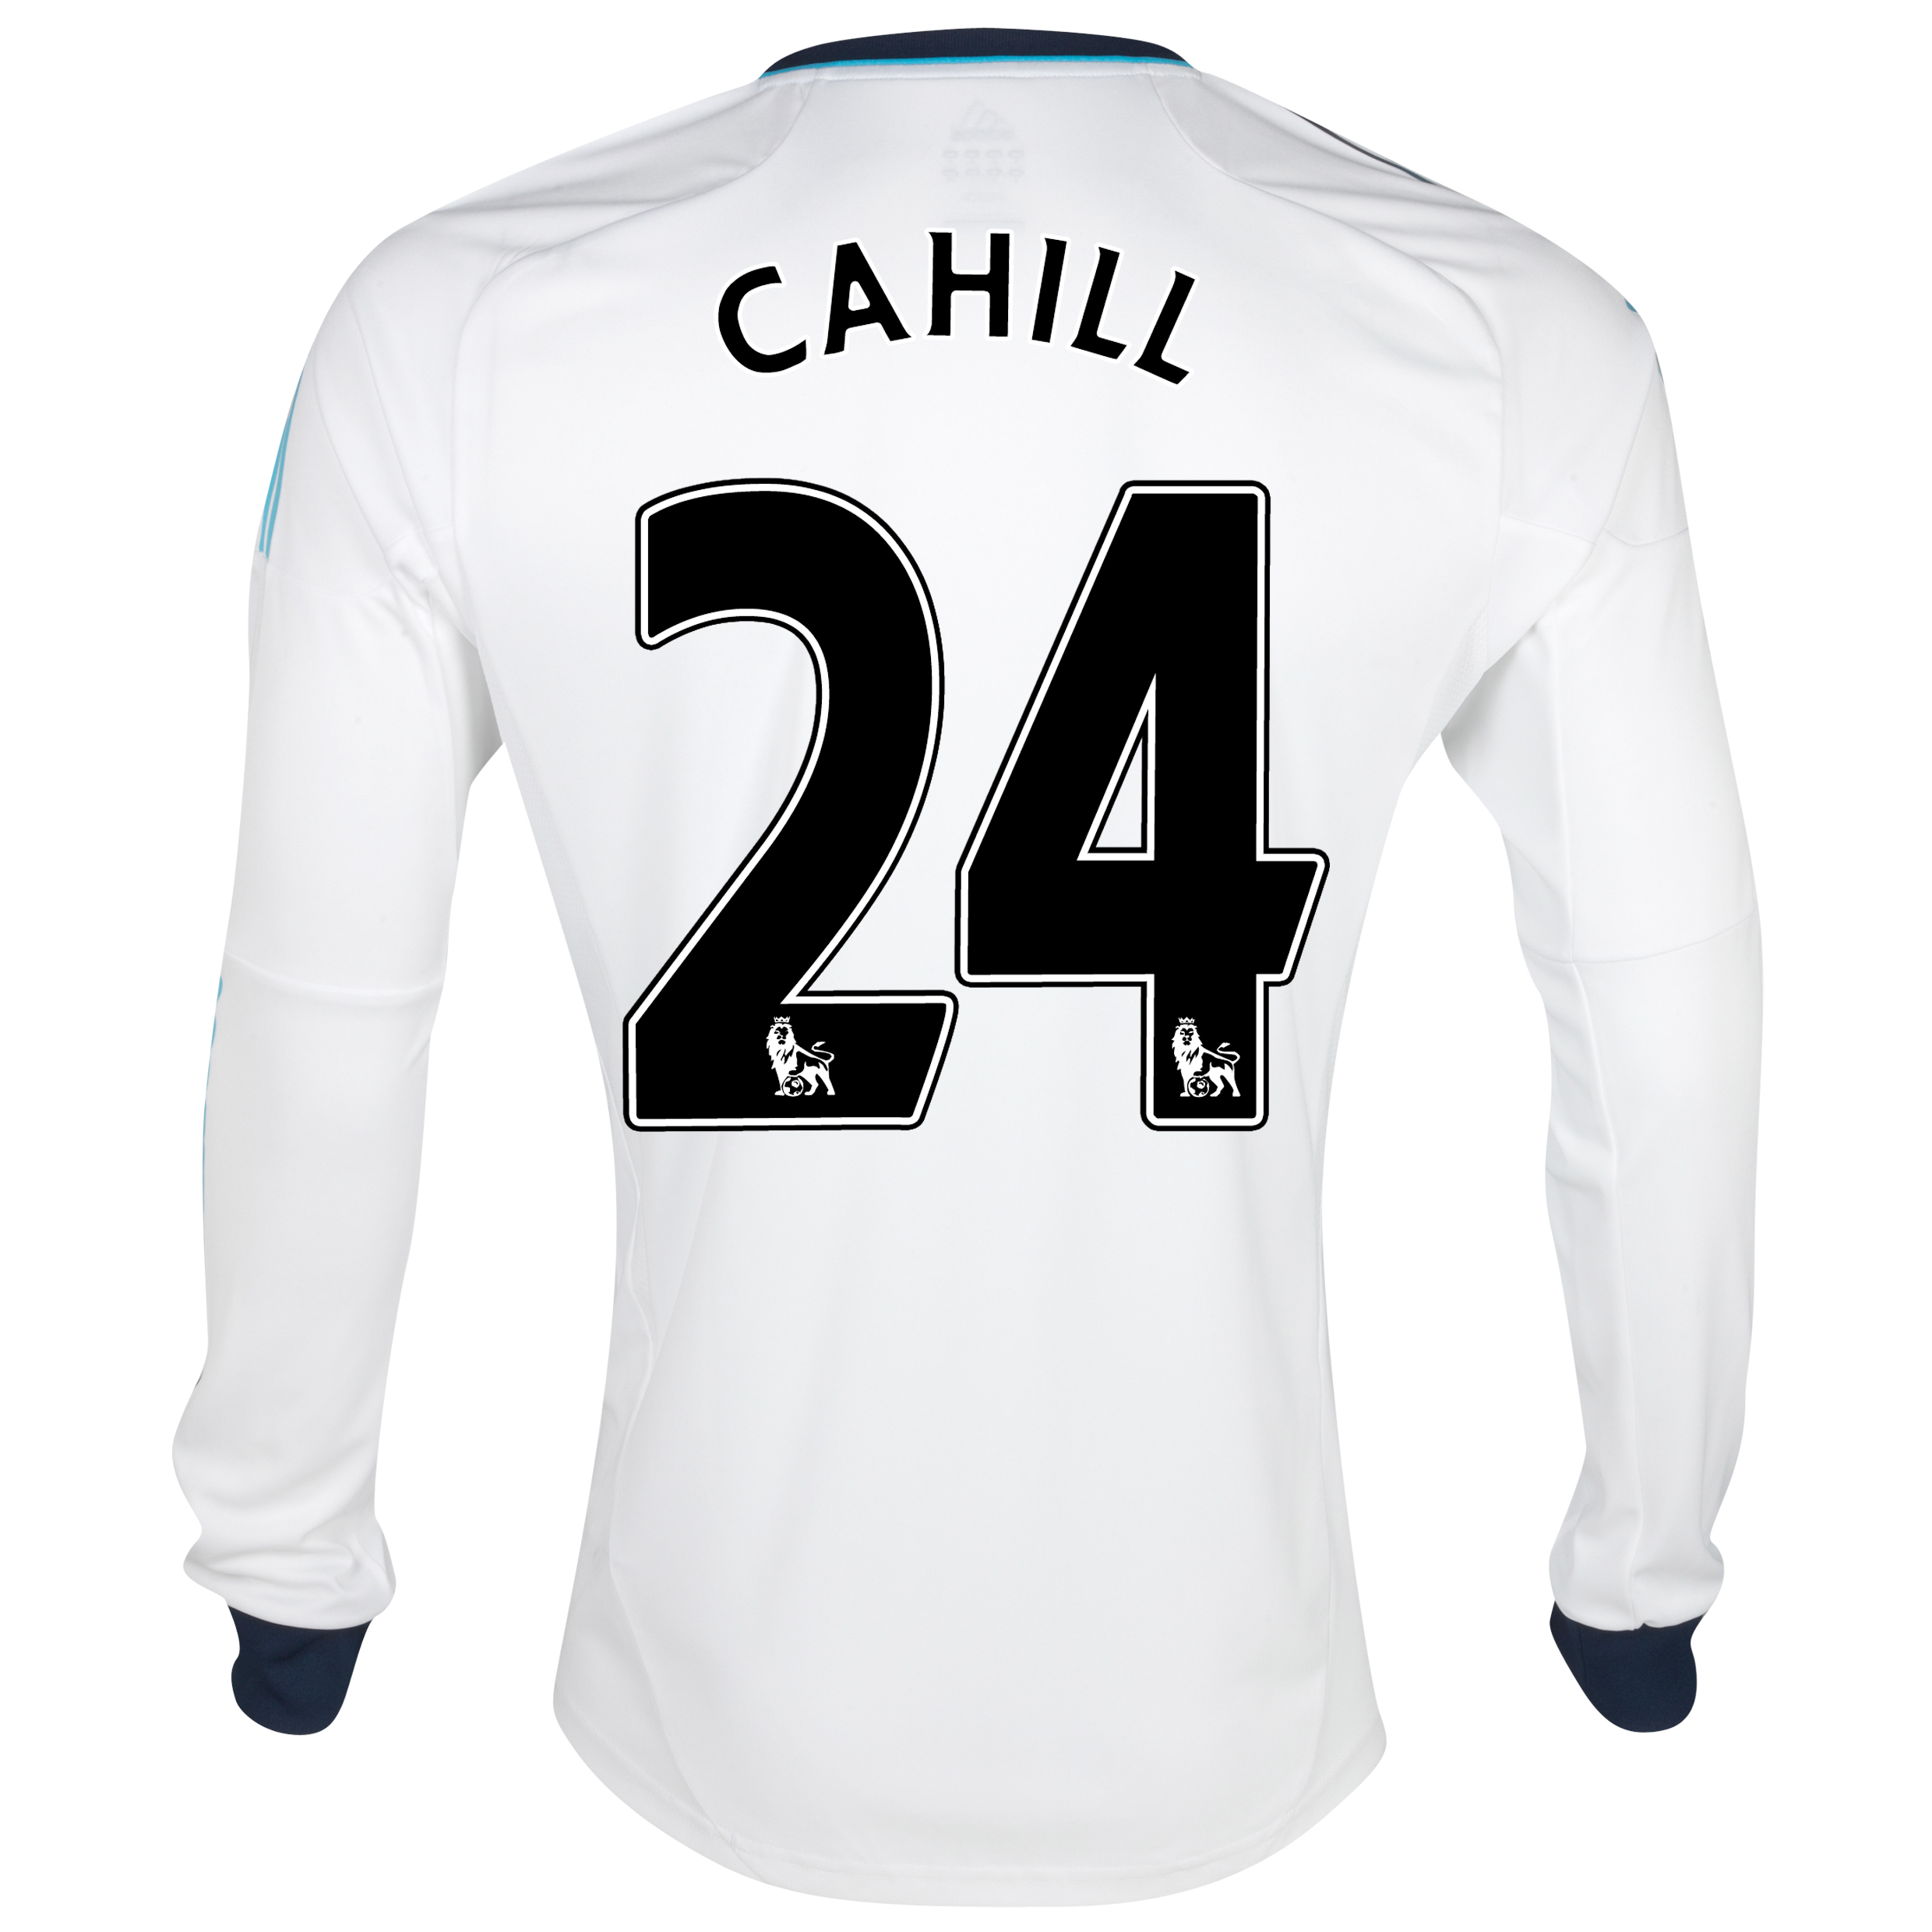 Chelsea Away Shirt 2012/13 - Long Sleeved - Kids with Cahill 24 printing